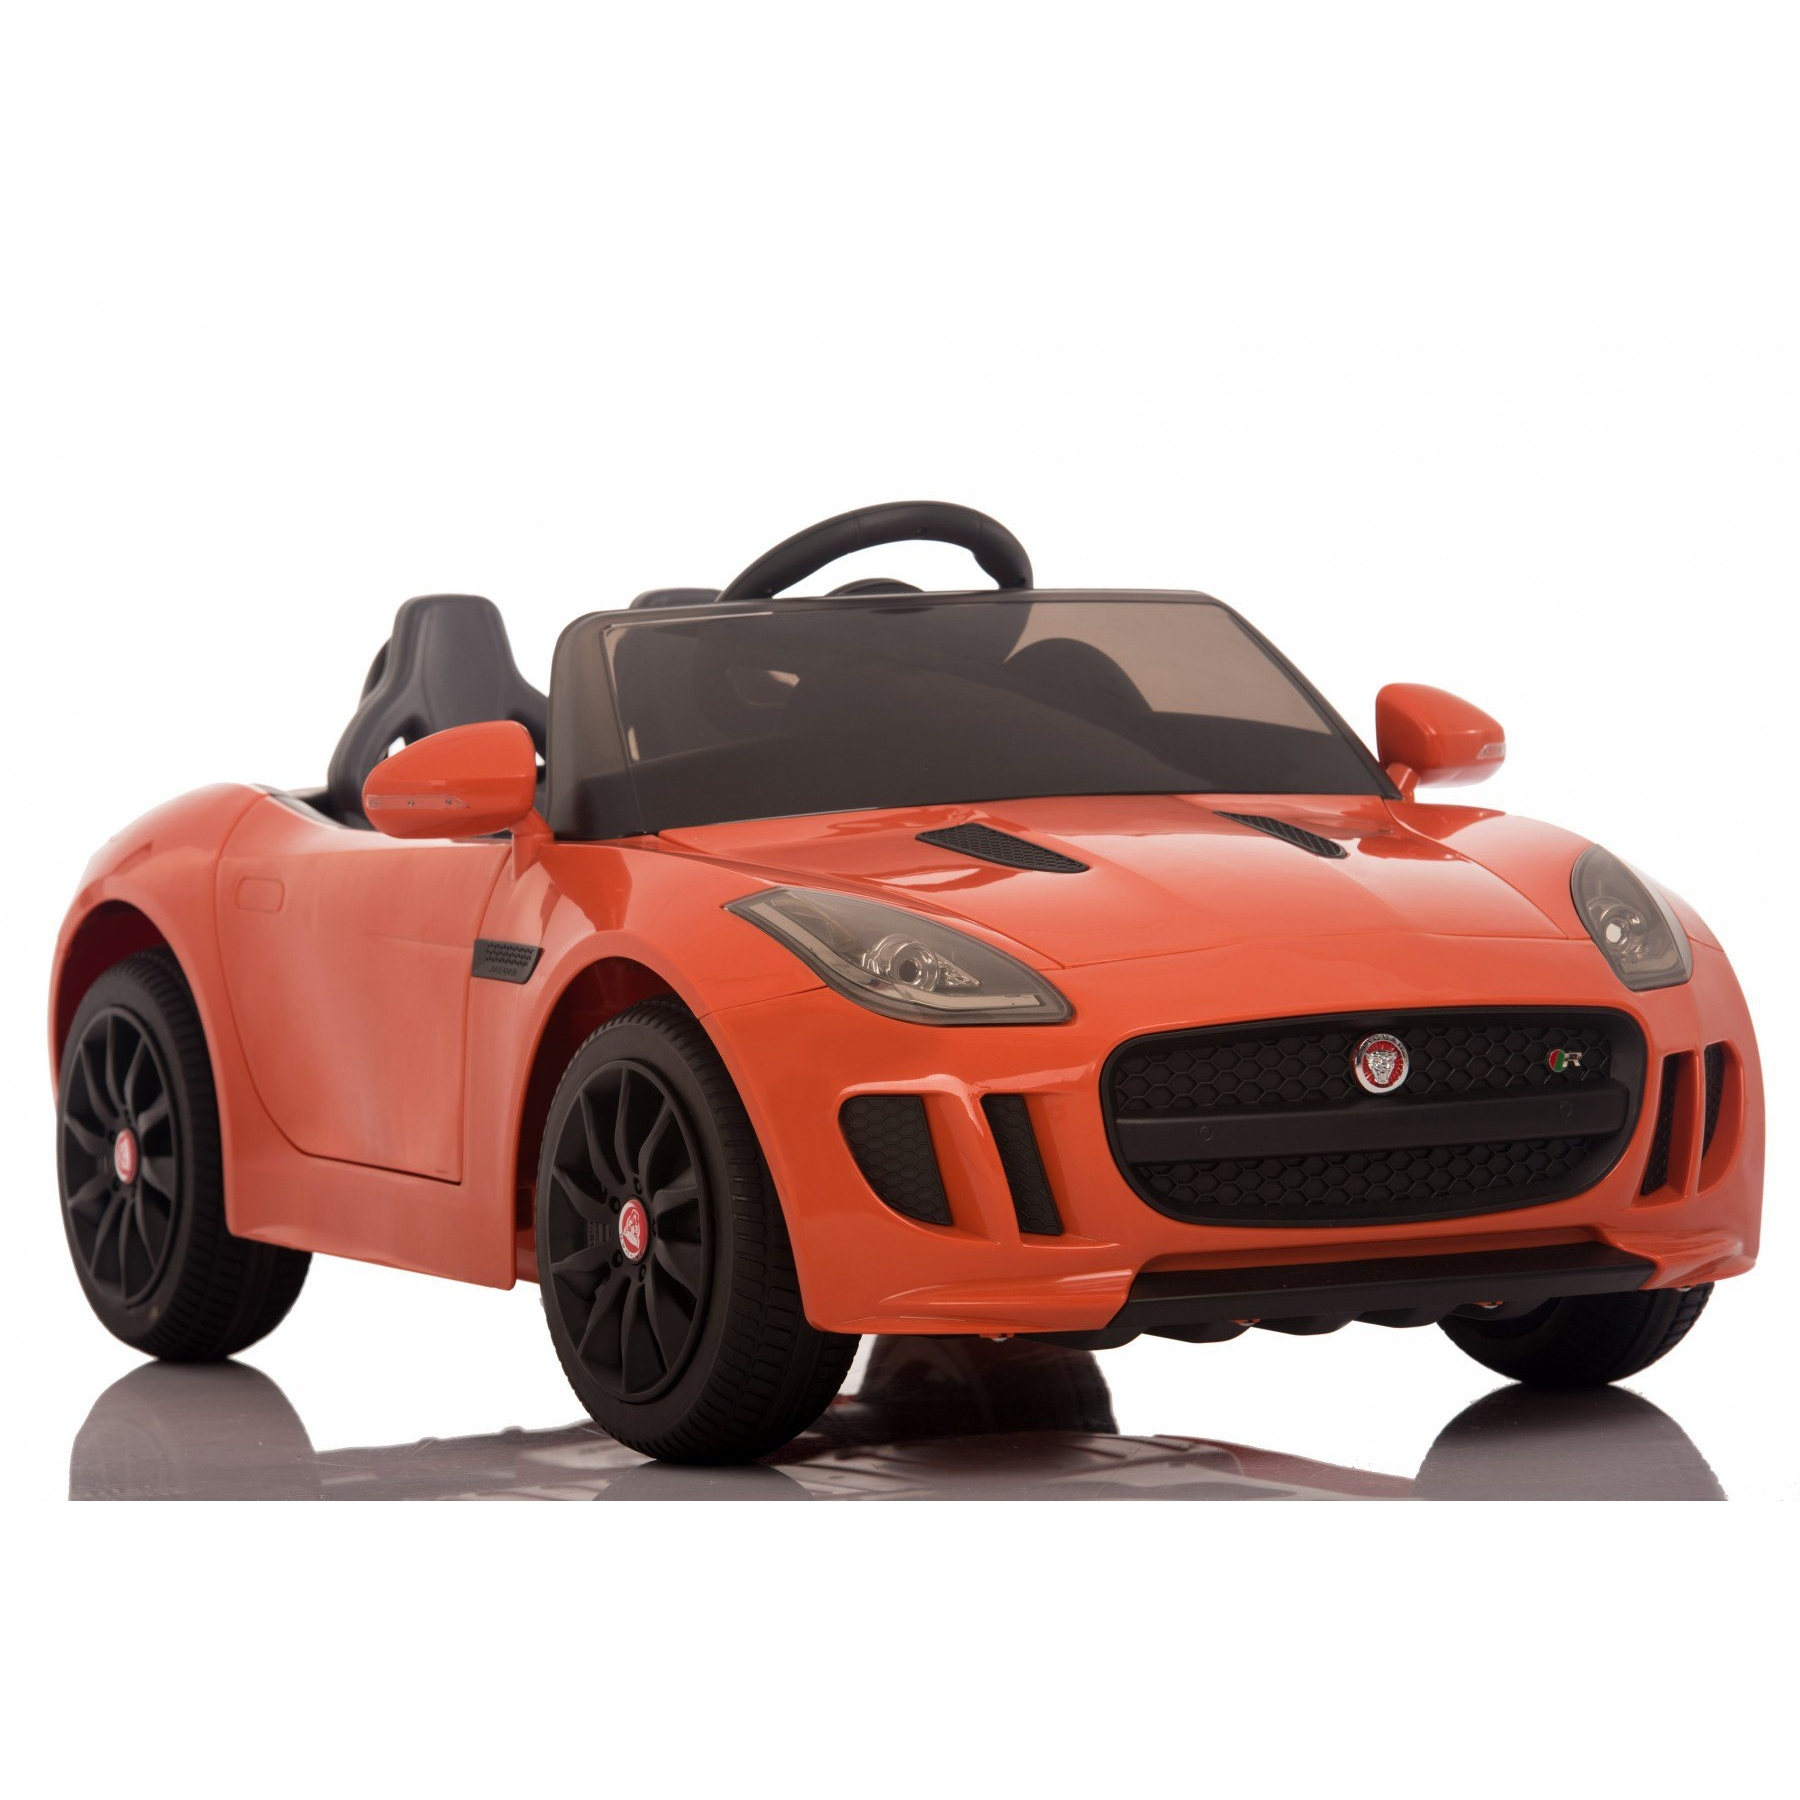 Licensed Jaguar F-Type 12V Kids Battery Powered Ride On Car - Orange